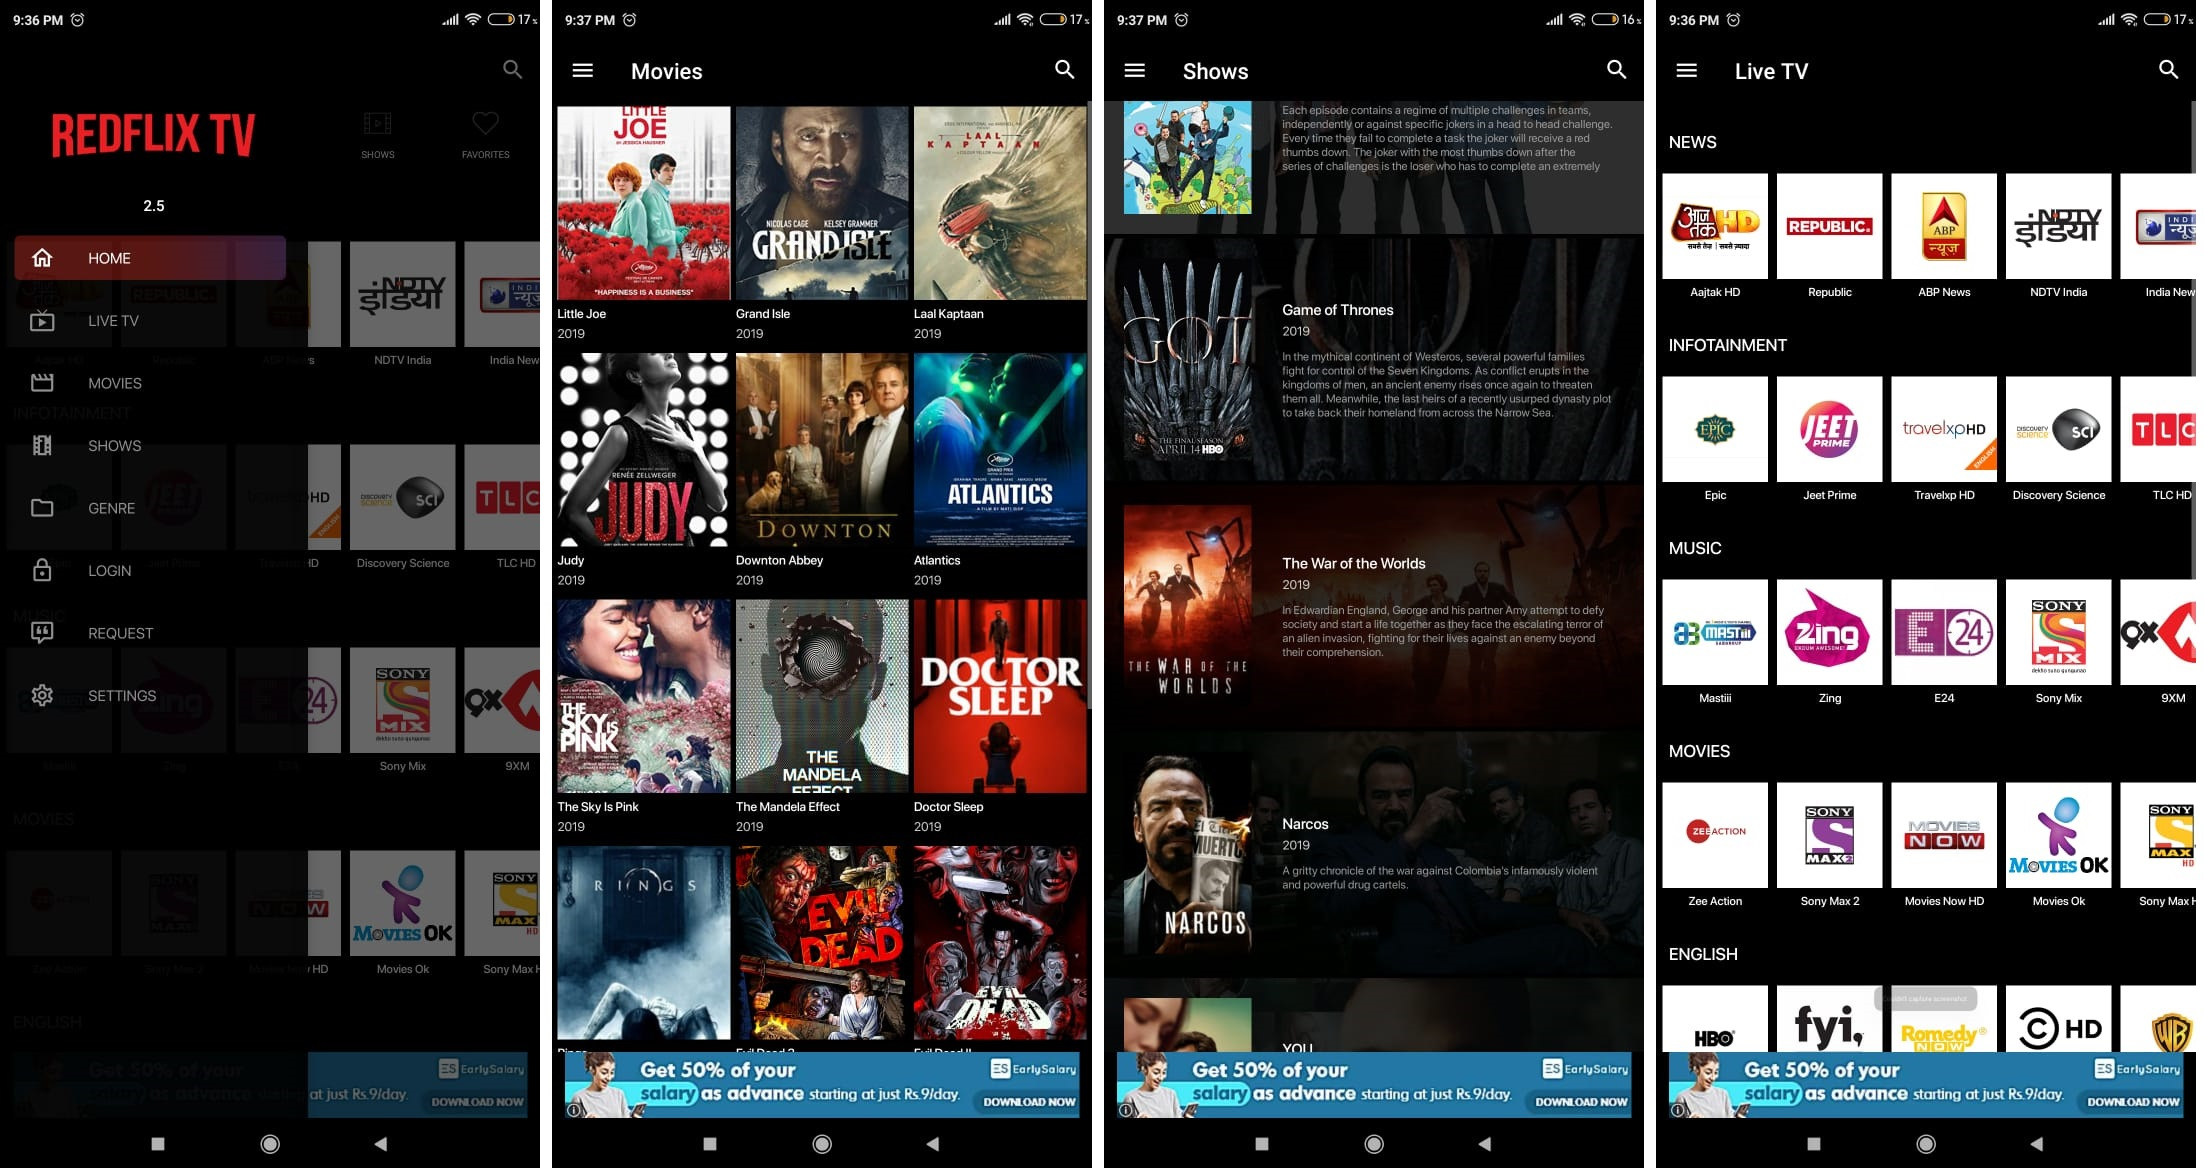 Redflix TV APK 2.5 Download For Android {2019}